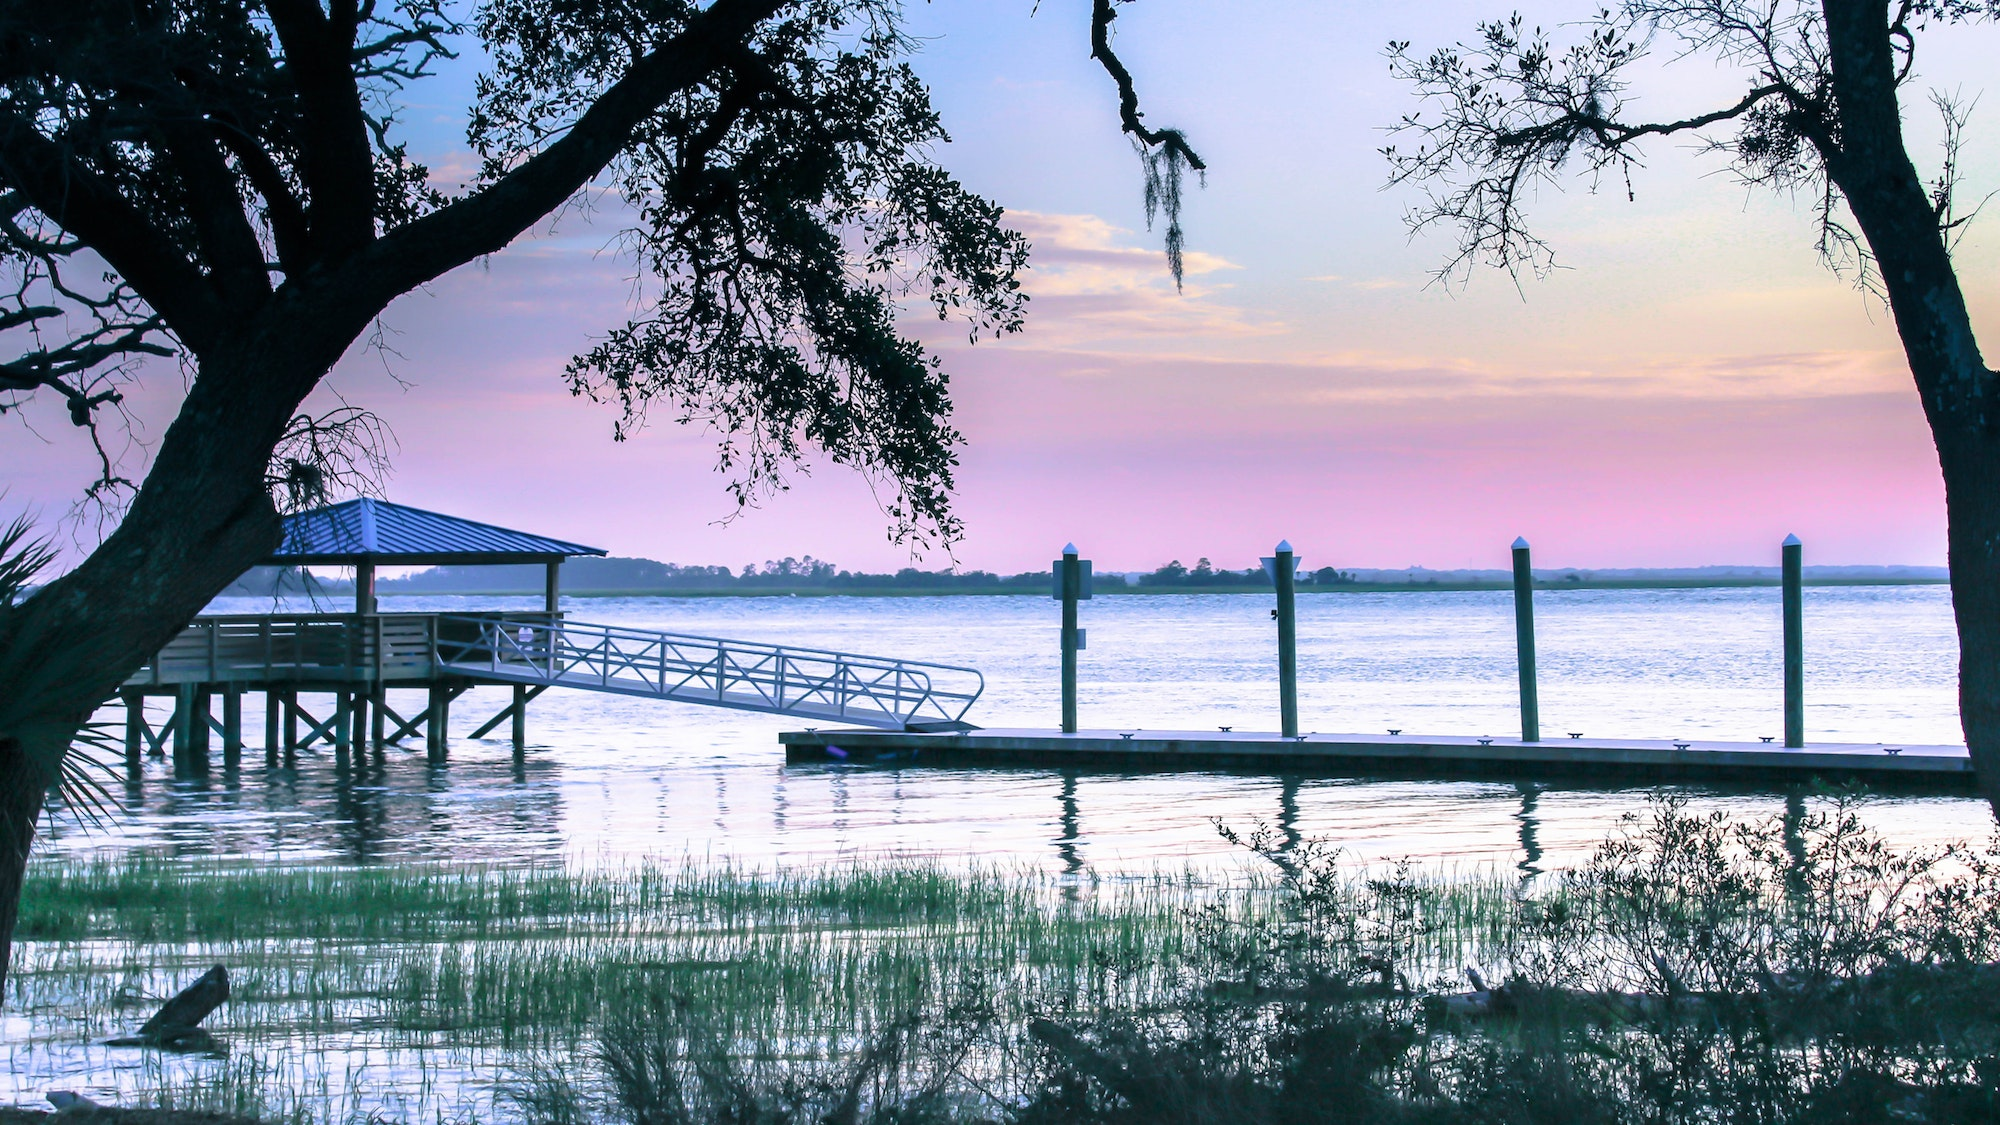 Spend evenings strolling the waterfront on Daufuskie Island.